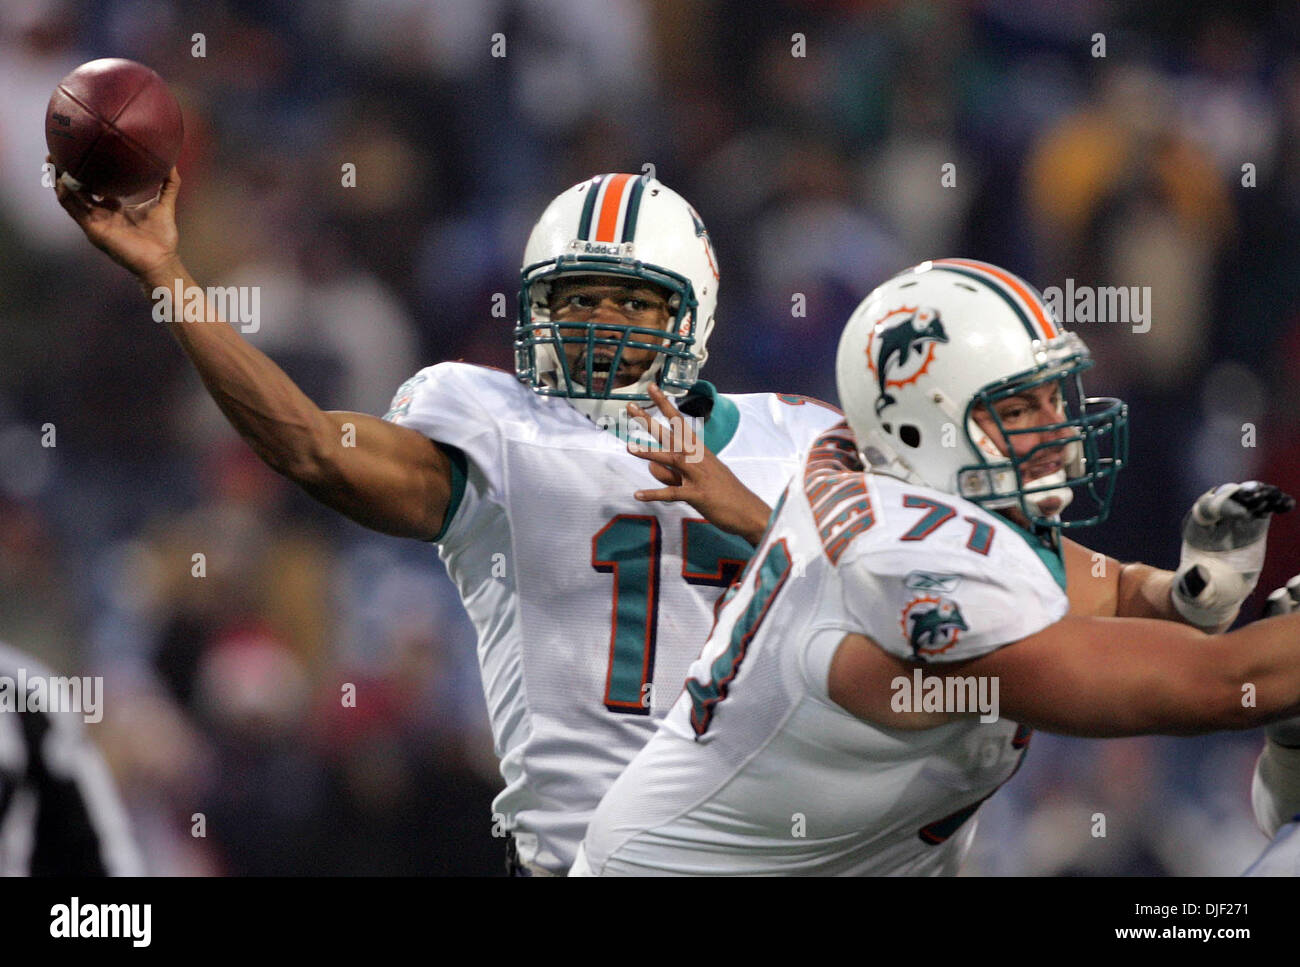 Dec 09, 2007 - Buffalo, New York, USA - Dolphins CLEO LEMON took over for John Beck in the first quarter. (Credit Stock Photo